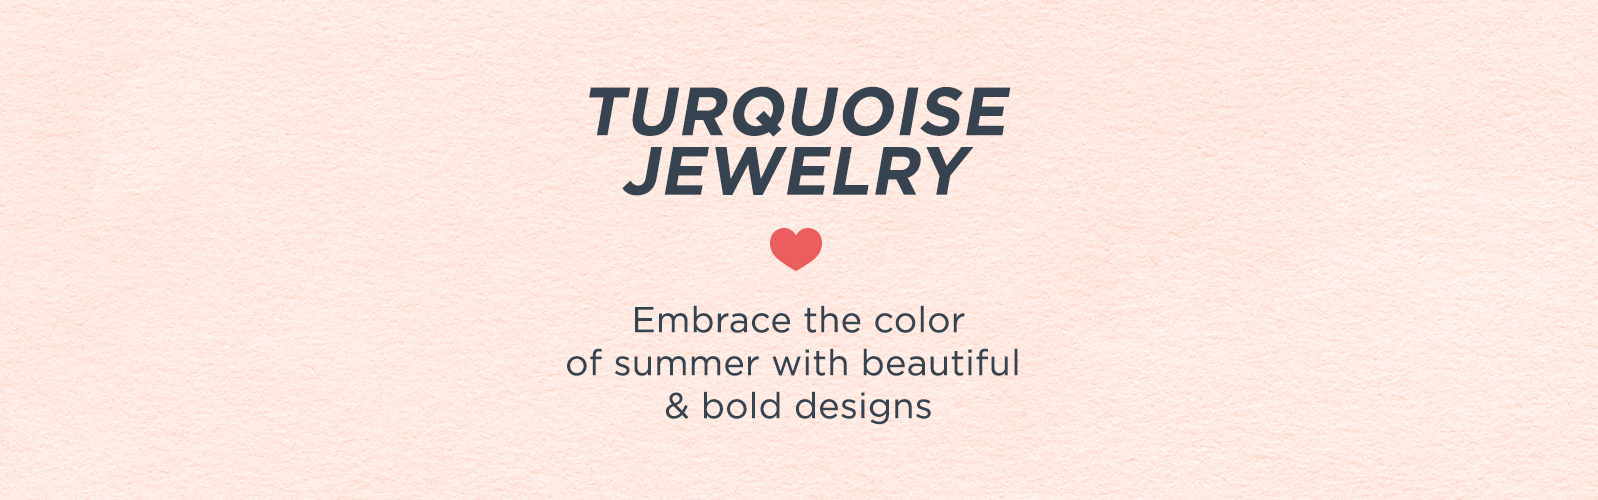 Turquoise Jewelry  Embrace the color of summer with beautiful & bold designs